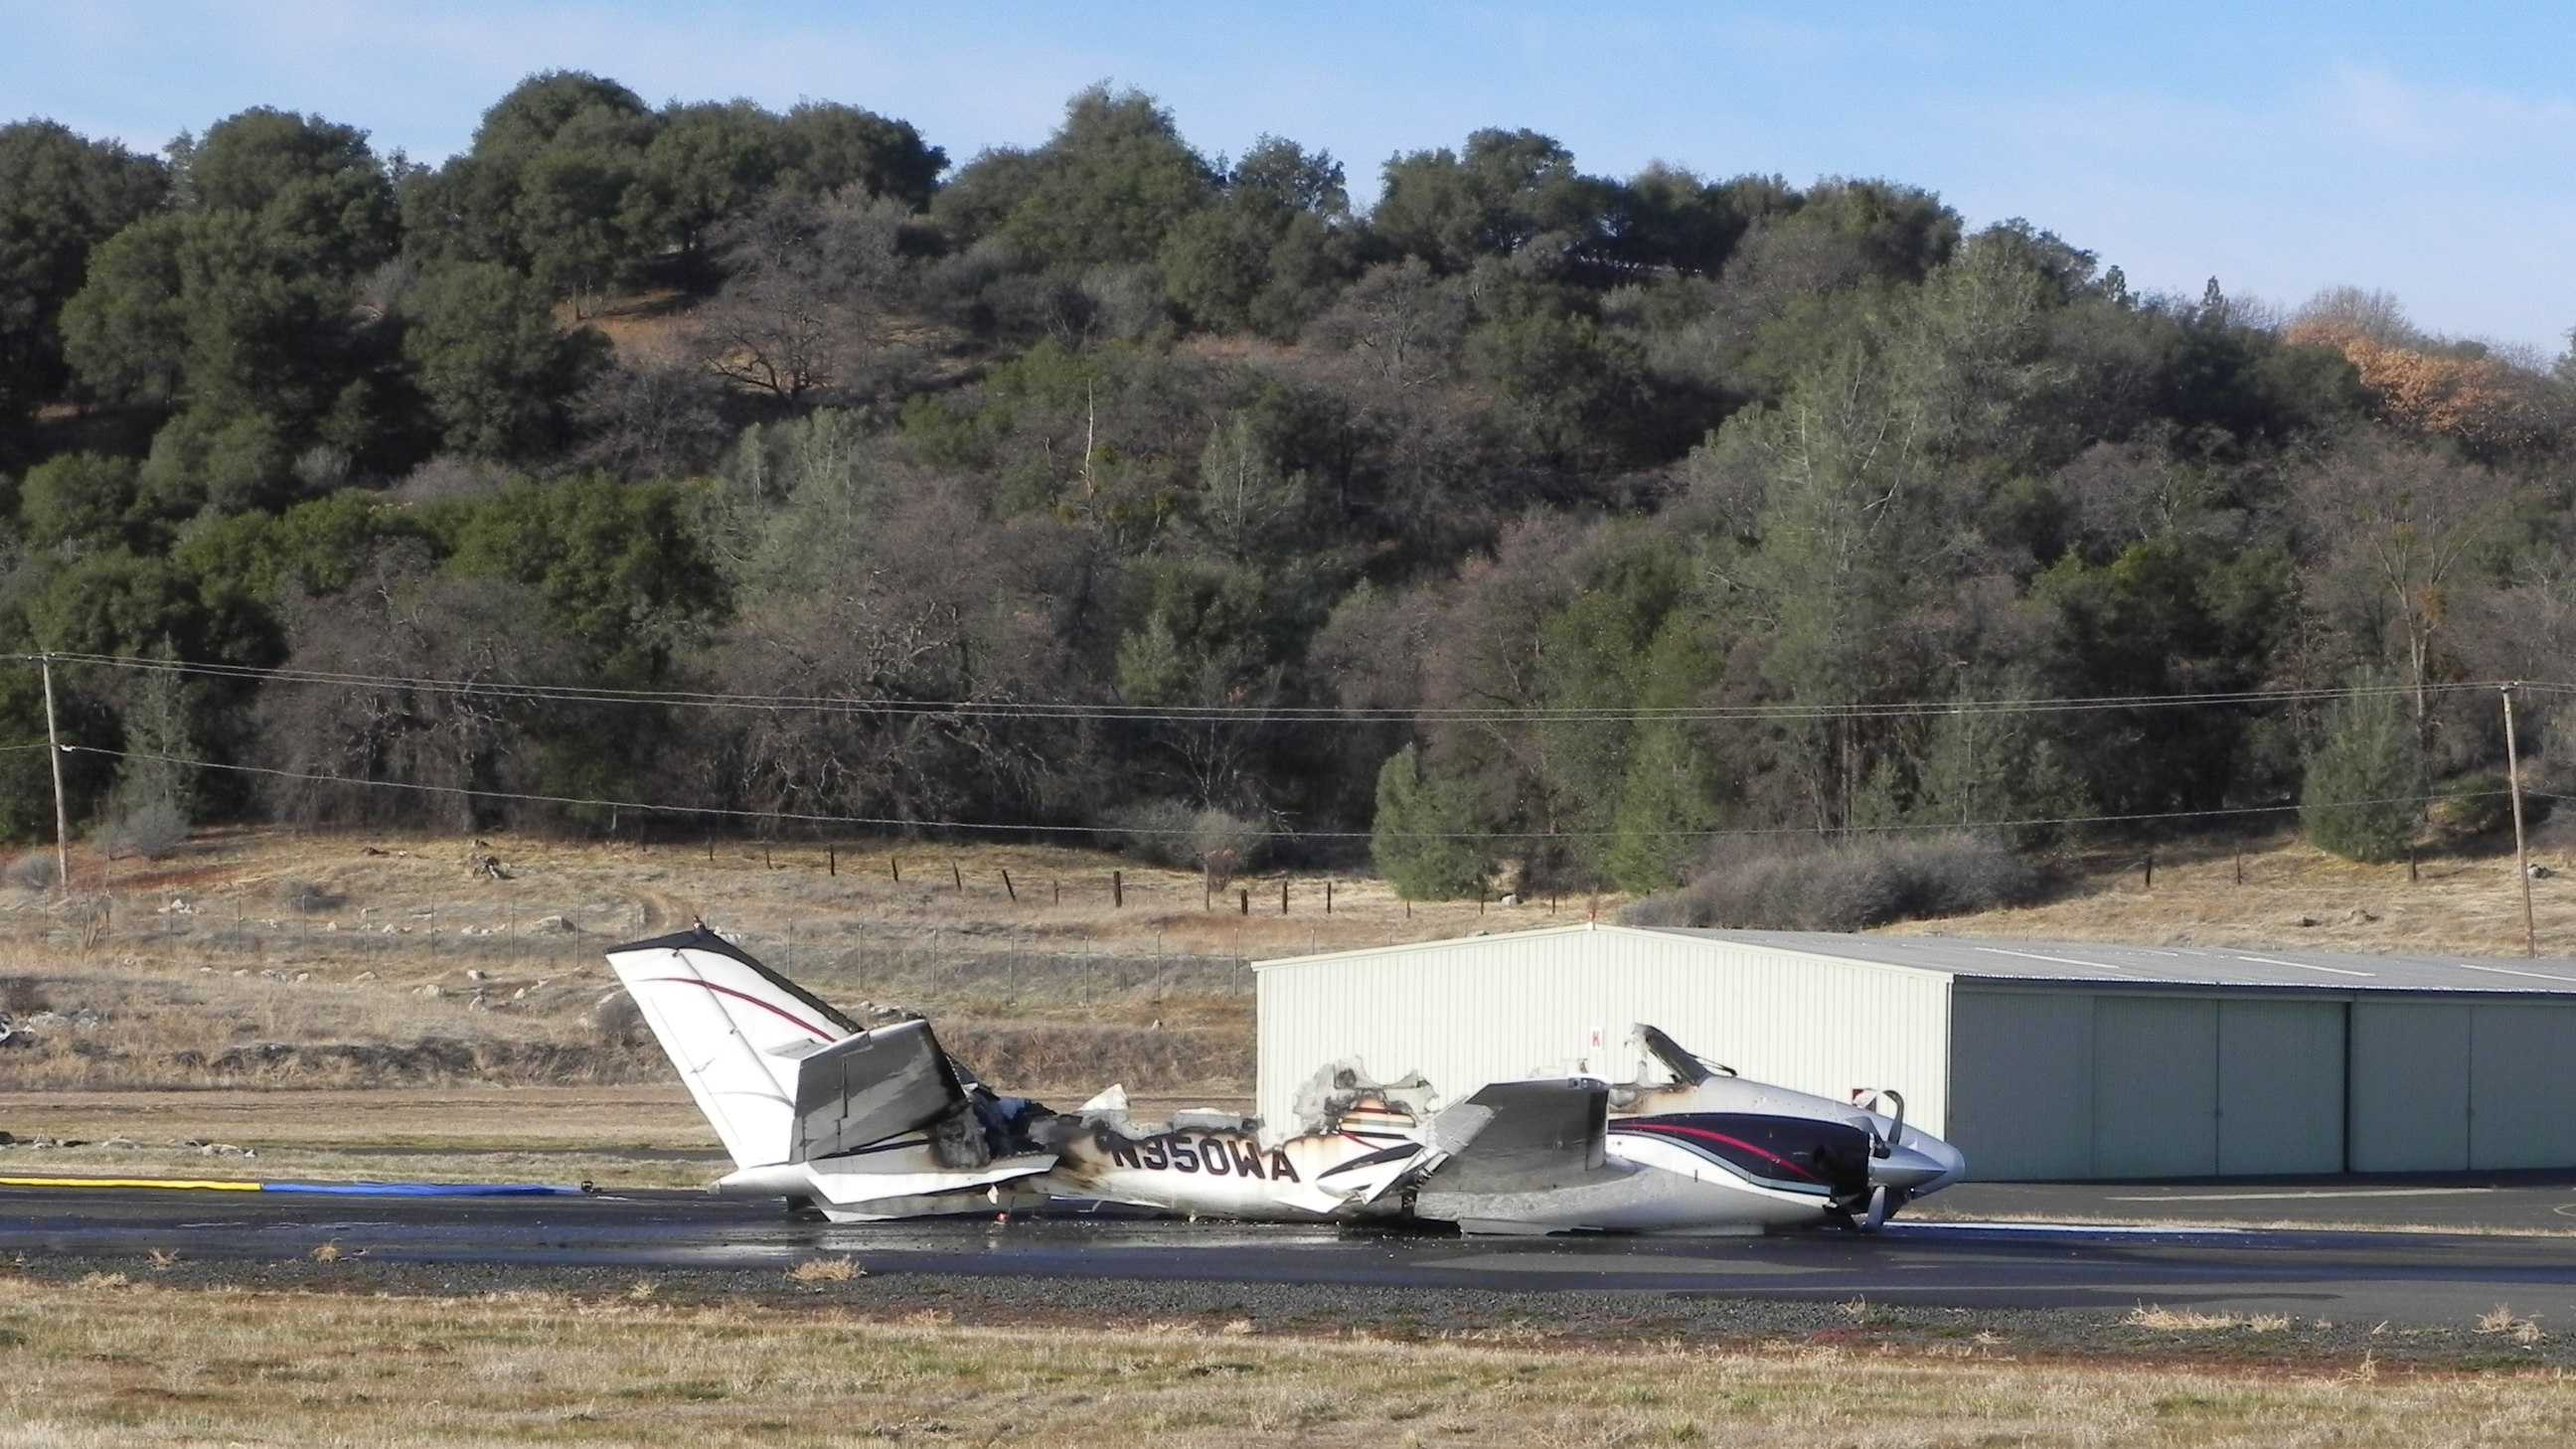 A small plane crashed at the Columbia Airport Monday morning.